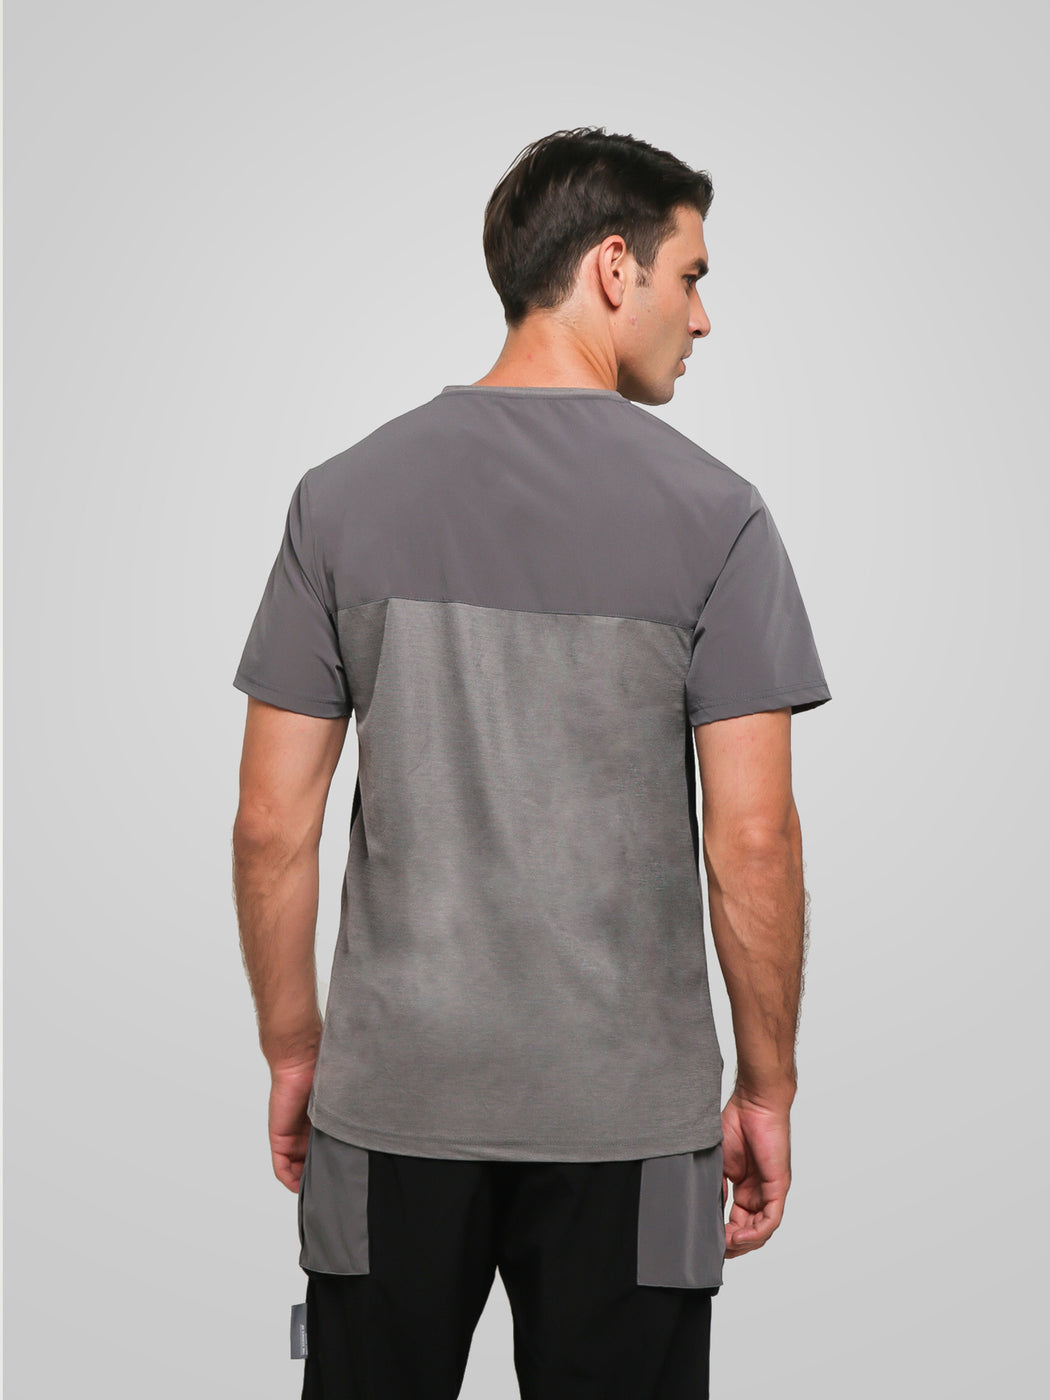 Unisex Ultimate Utilitarian Grey Male T-shirt